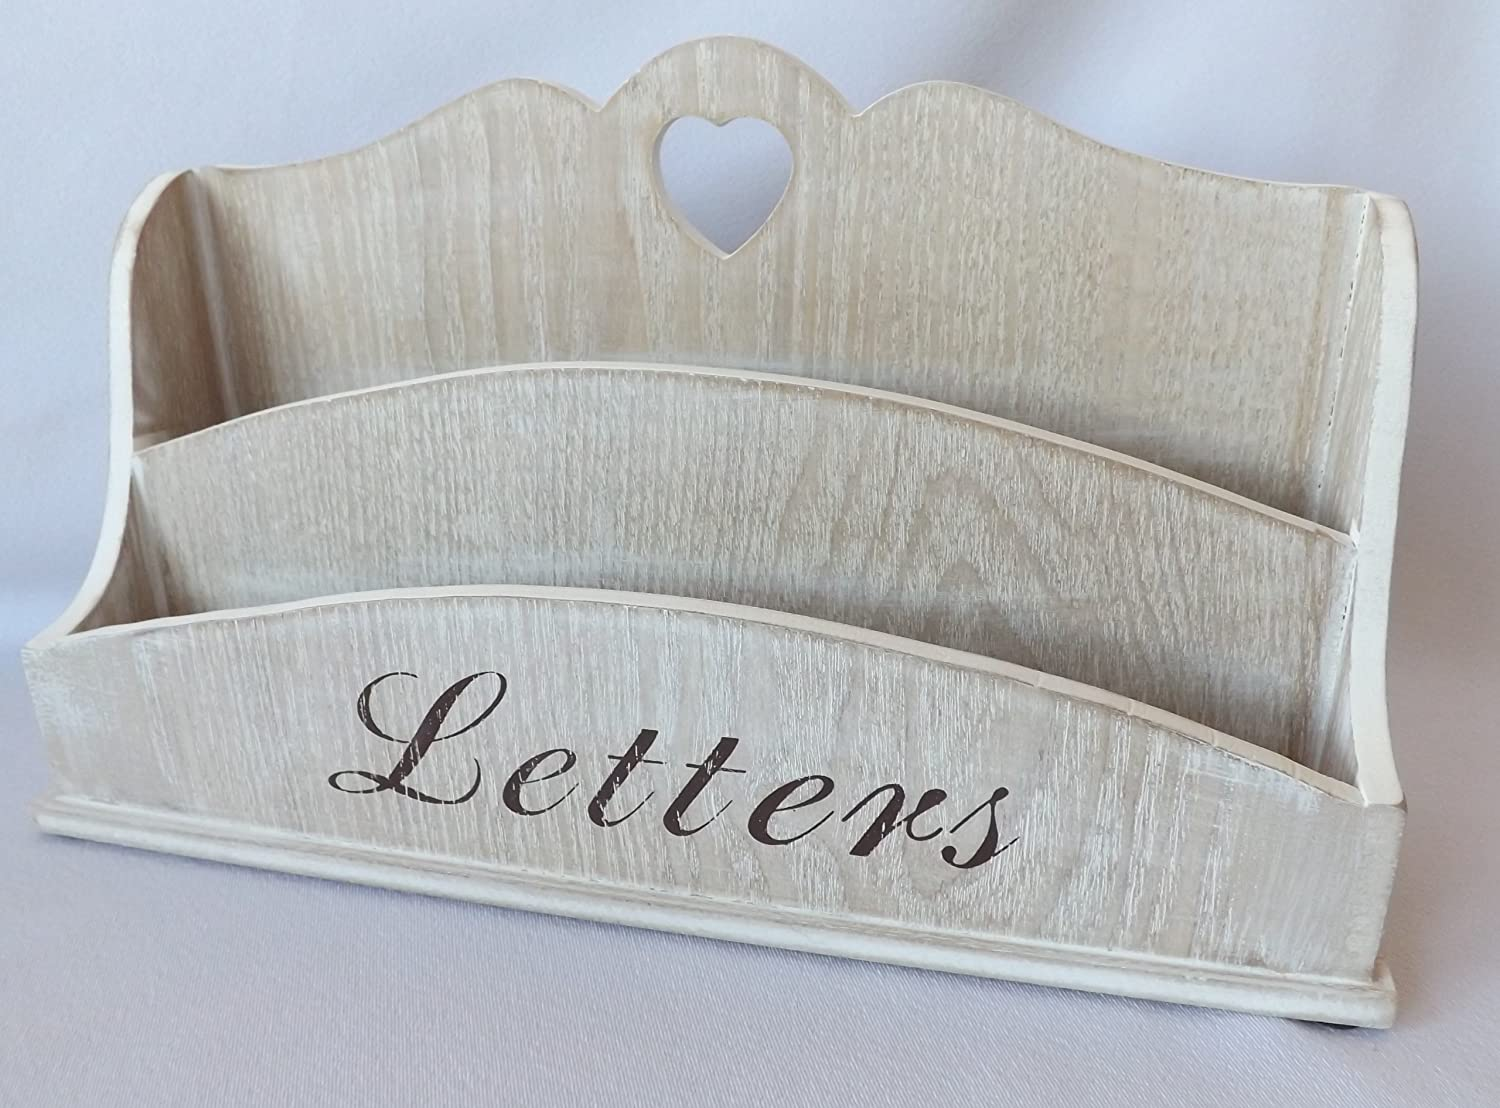 Lovely Shabby Chic Country White Washed Wooden Letter Rack Post Storage Box With  Heart Cut Out: Amazon.co.uk: Kitchen U0026 Home